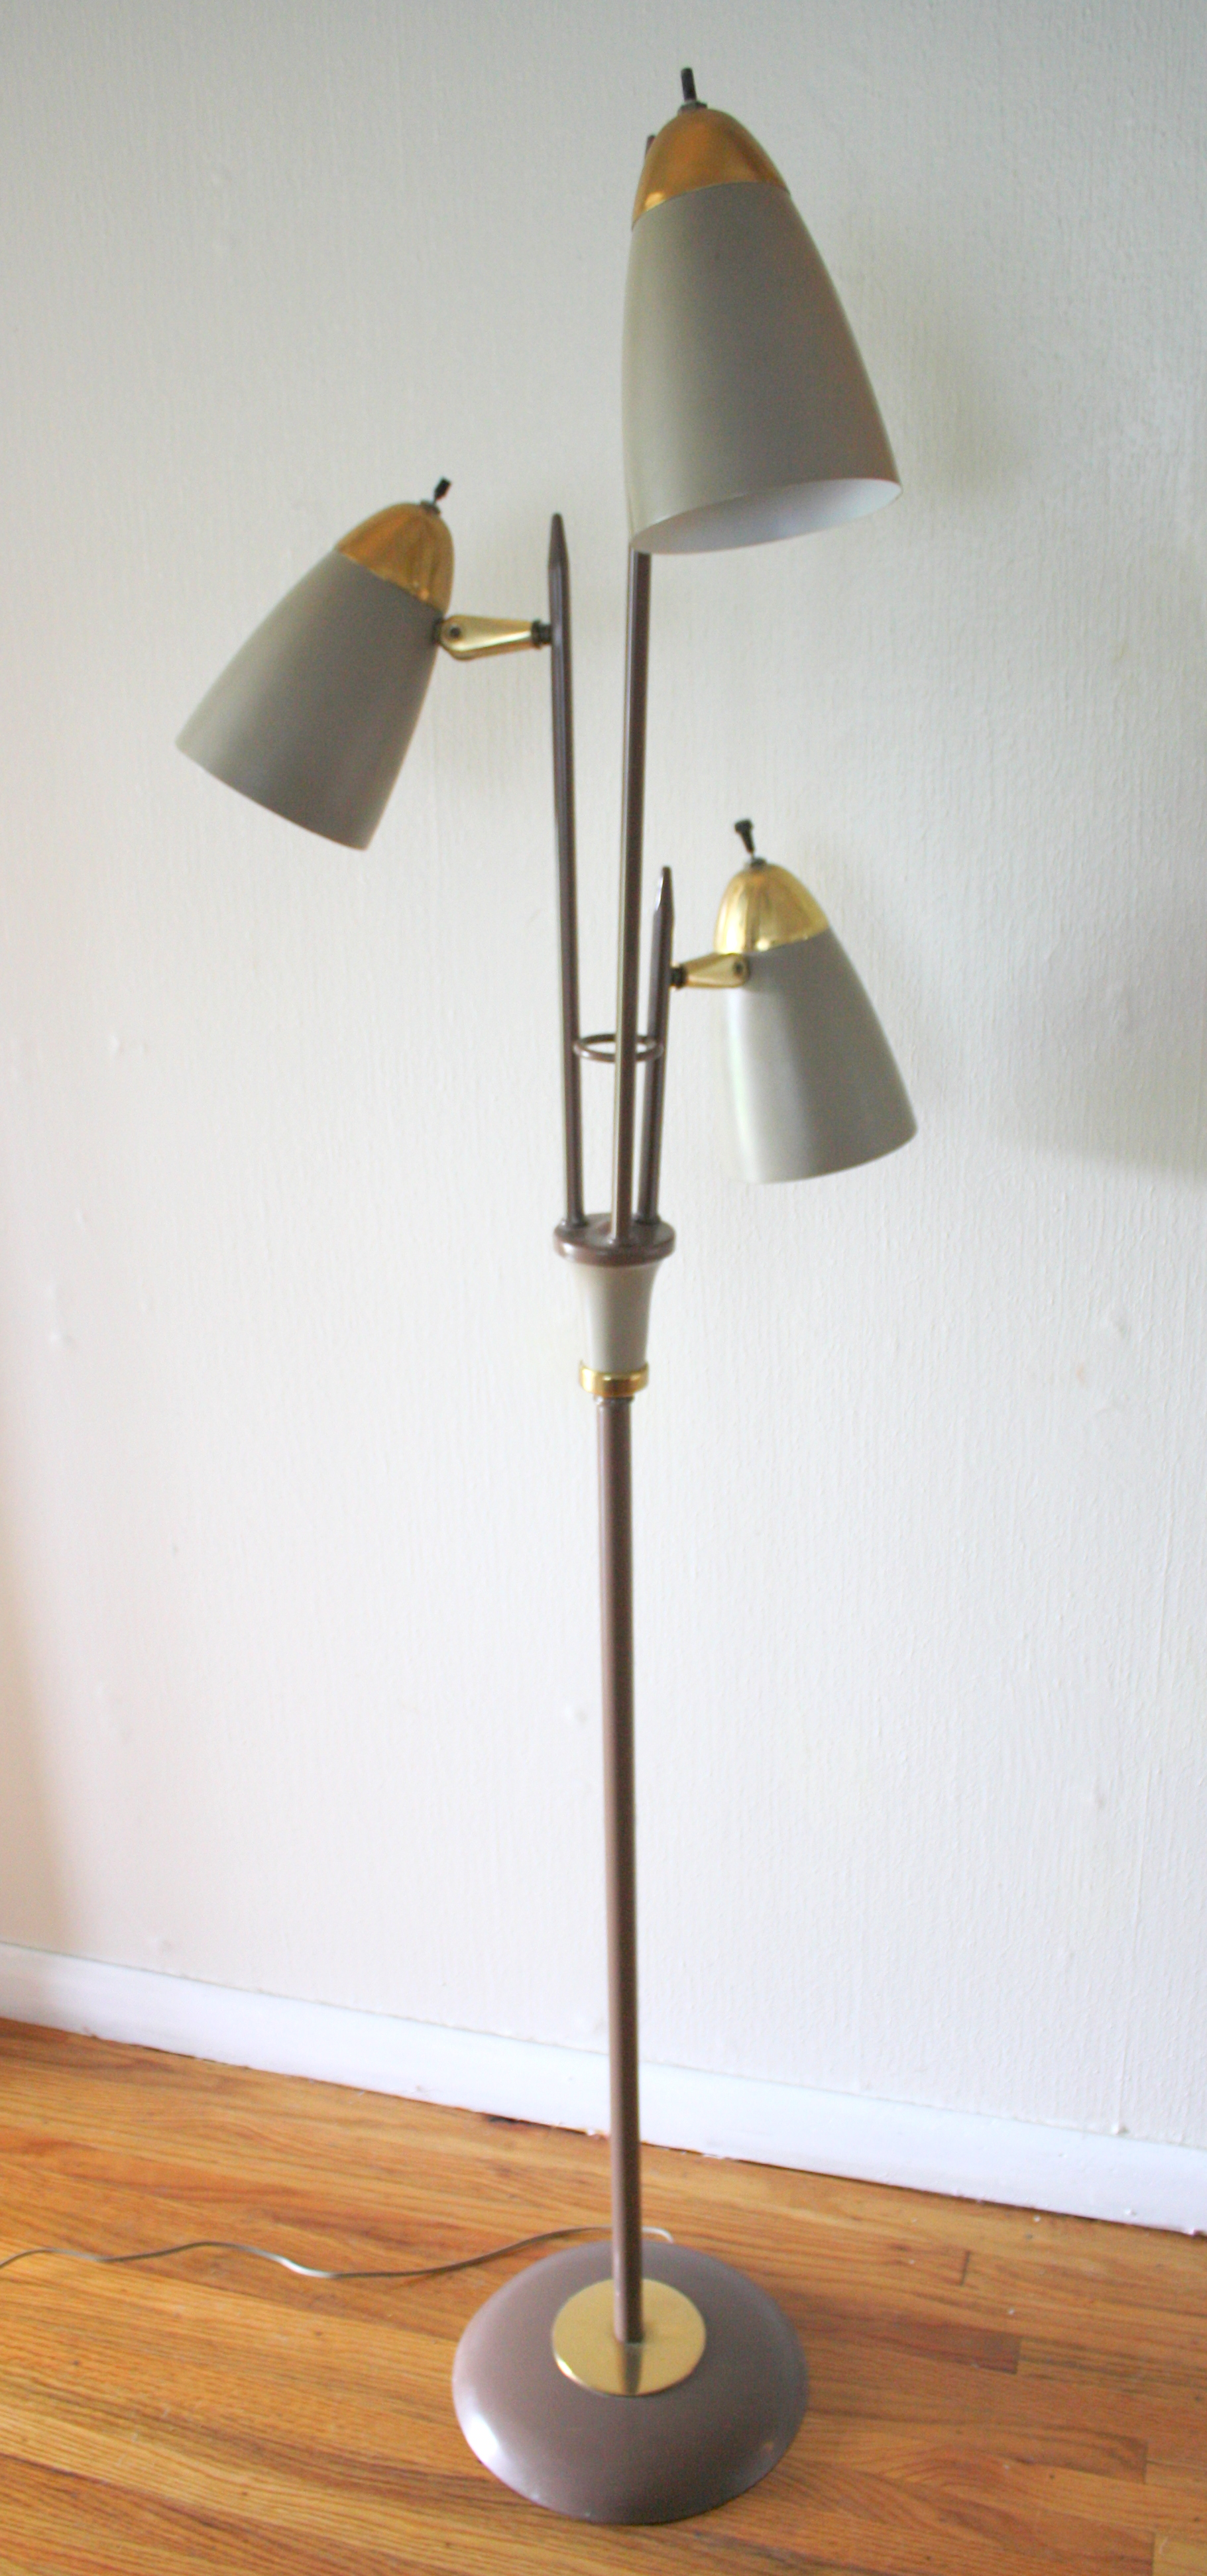 Mid century modern bullet floor lamp and desk picked vintage bullet lamp 1 aloadofball Gallery